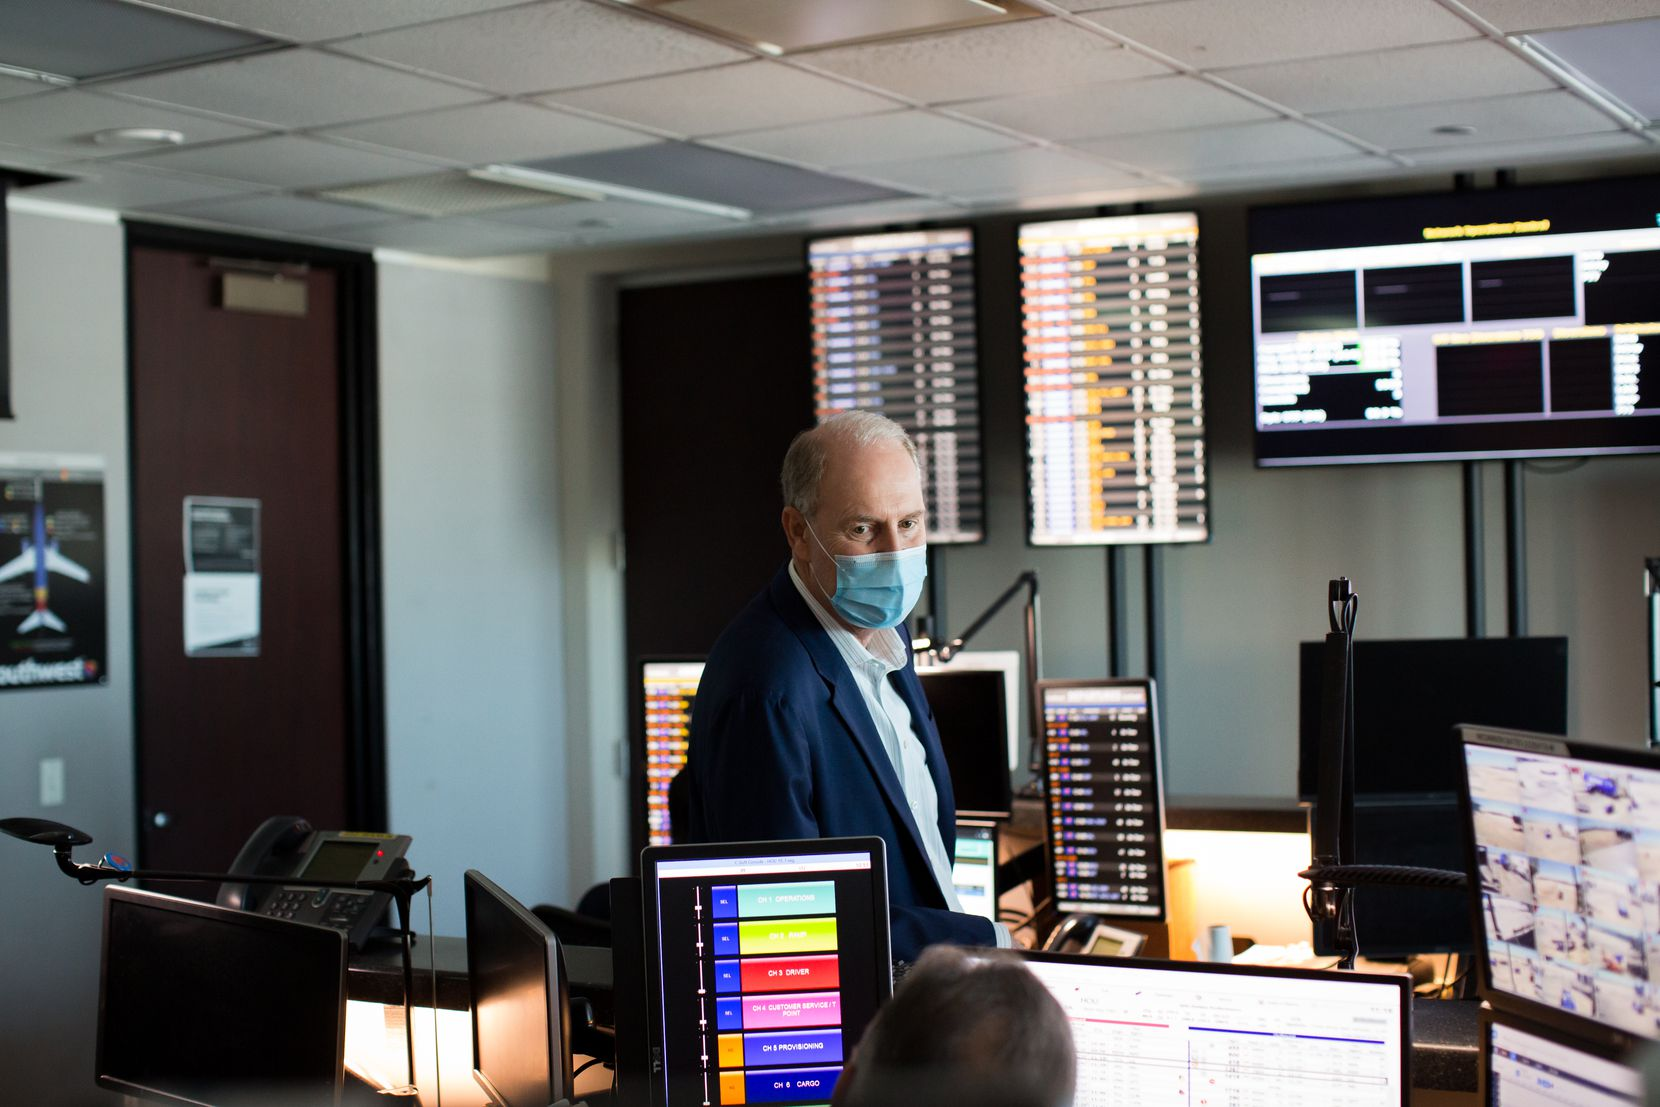 Southwest Airlines CEO Gary Kelly visited the company's operations center at Houston Hobby Airport in June.